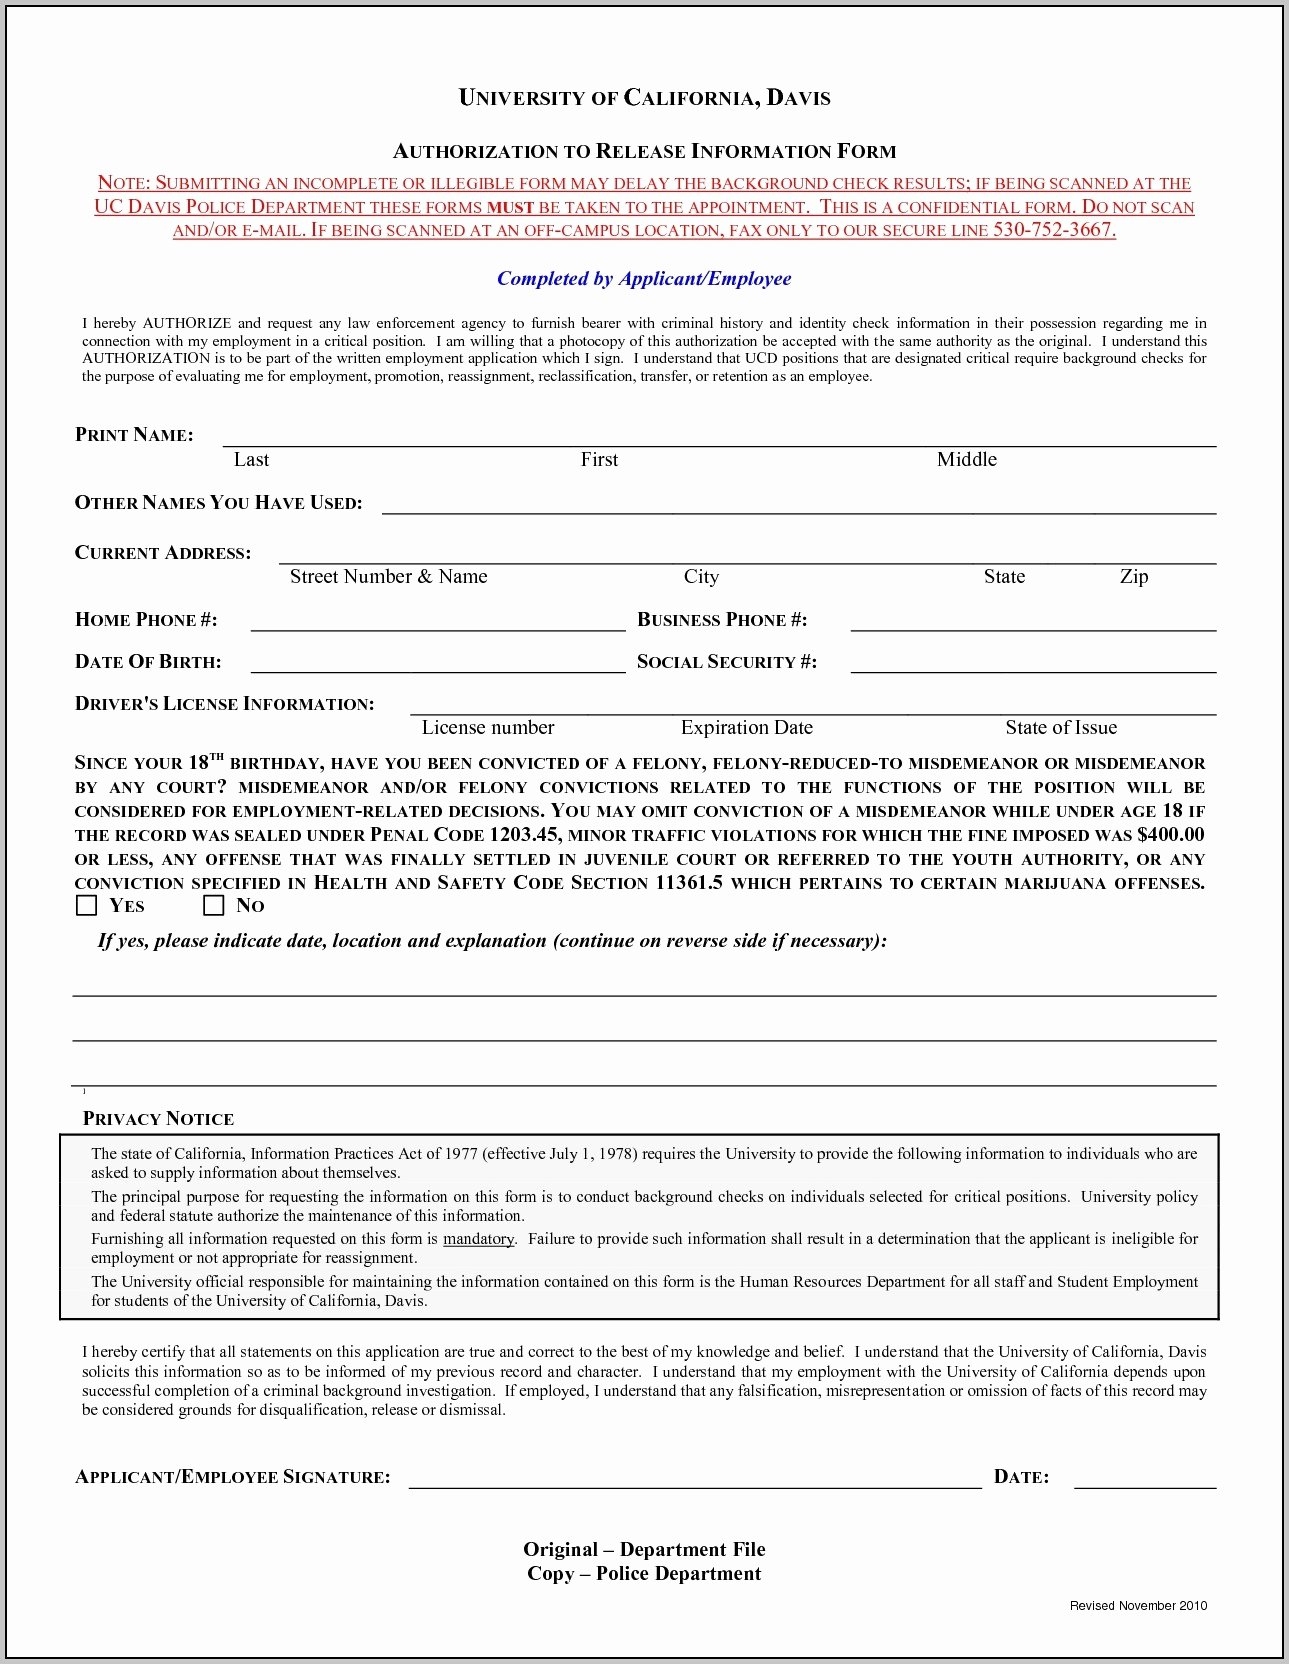 Background Check form Template Inspirational Background Check Authorization form Template